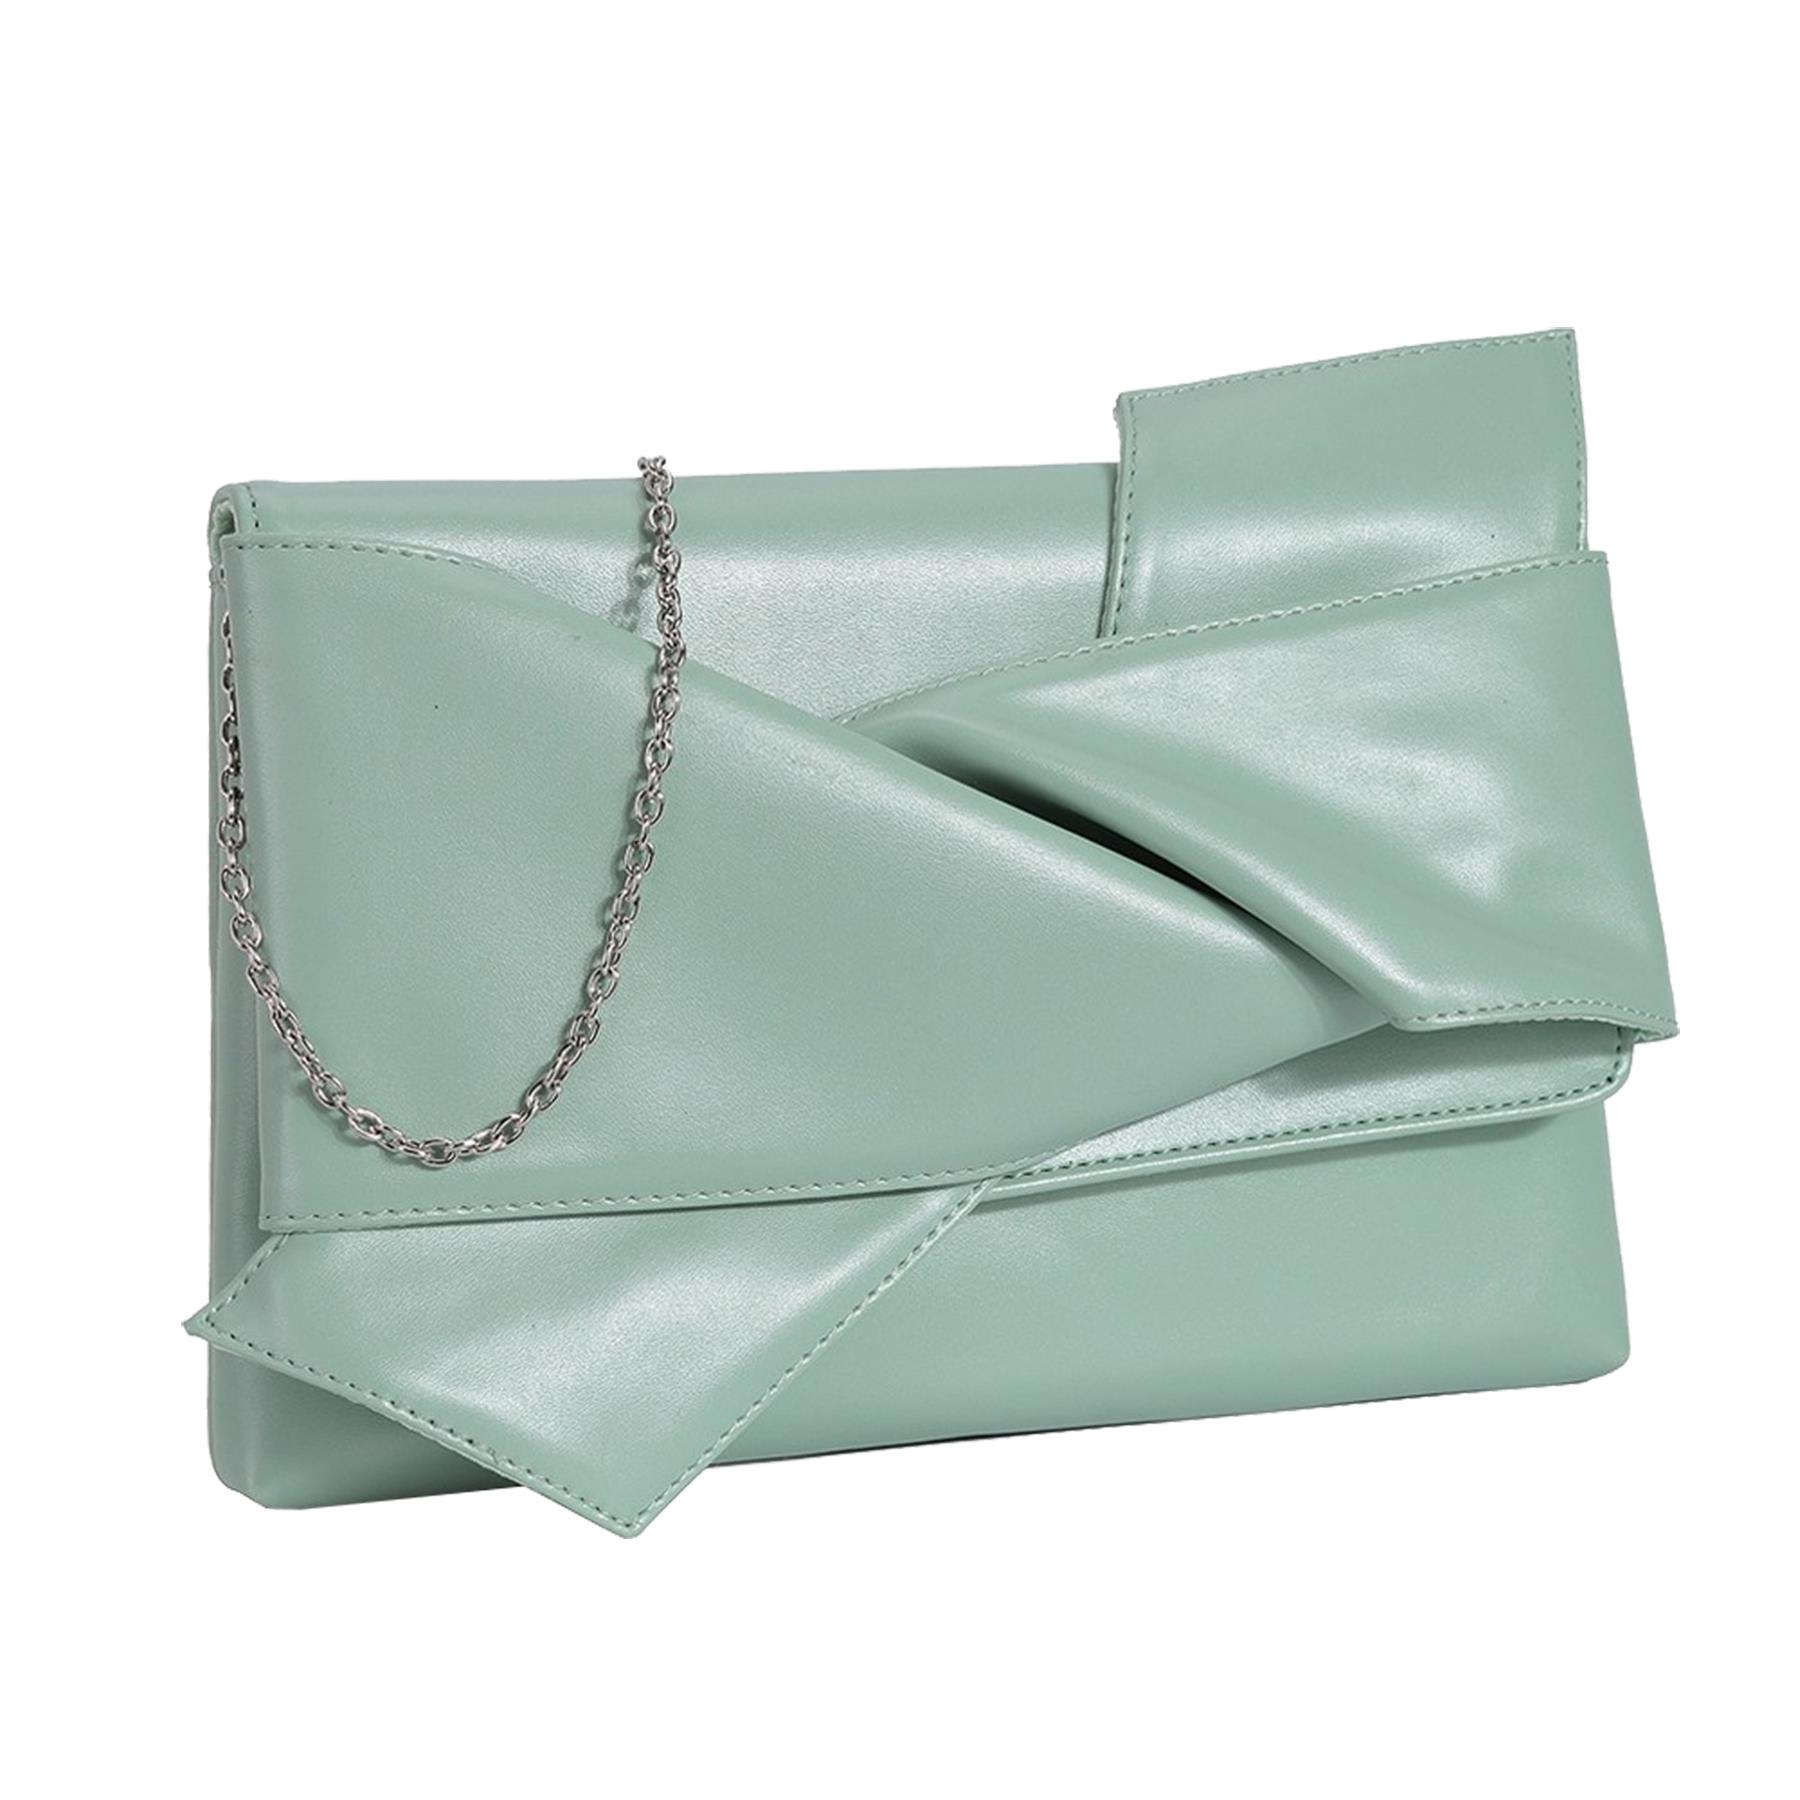 New-Knot-Detail-Shiny-Synthetic-Leather-Ladies-Party-Clutch-Bag-Purse thumbnail 12